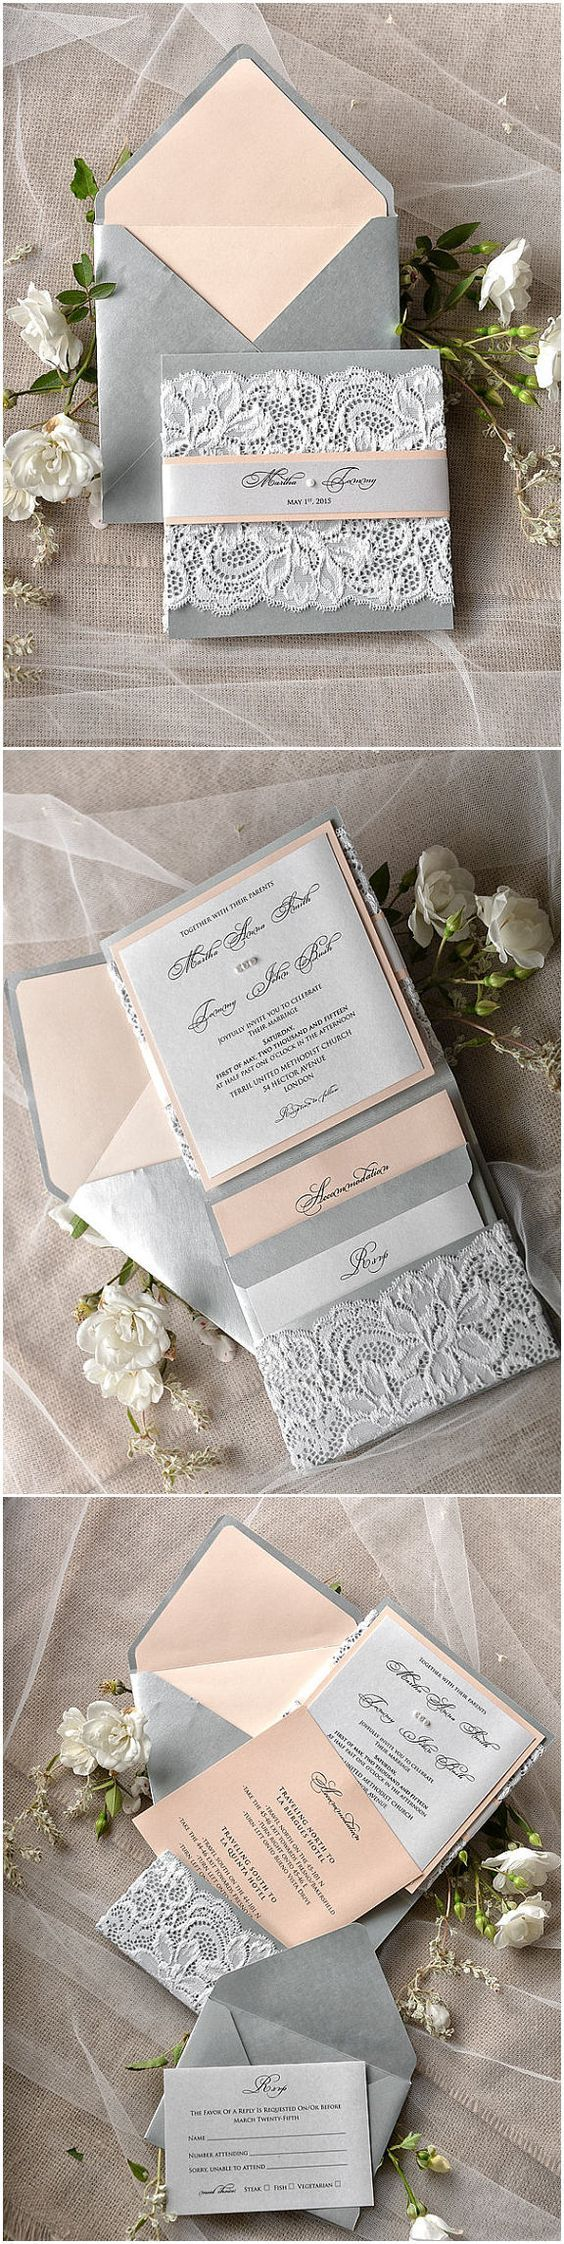 peach and grey rustic vintage lace wedding